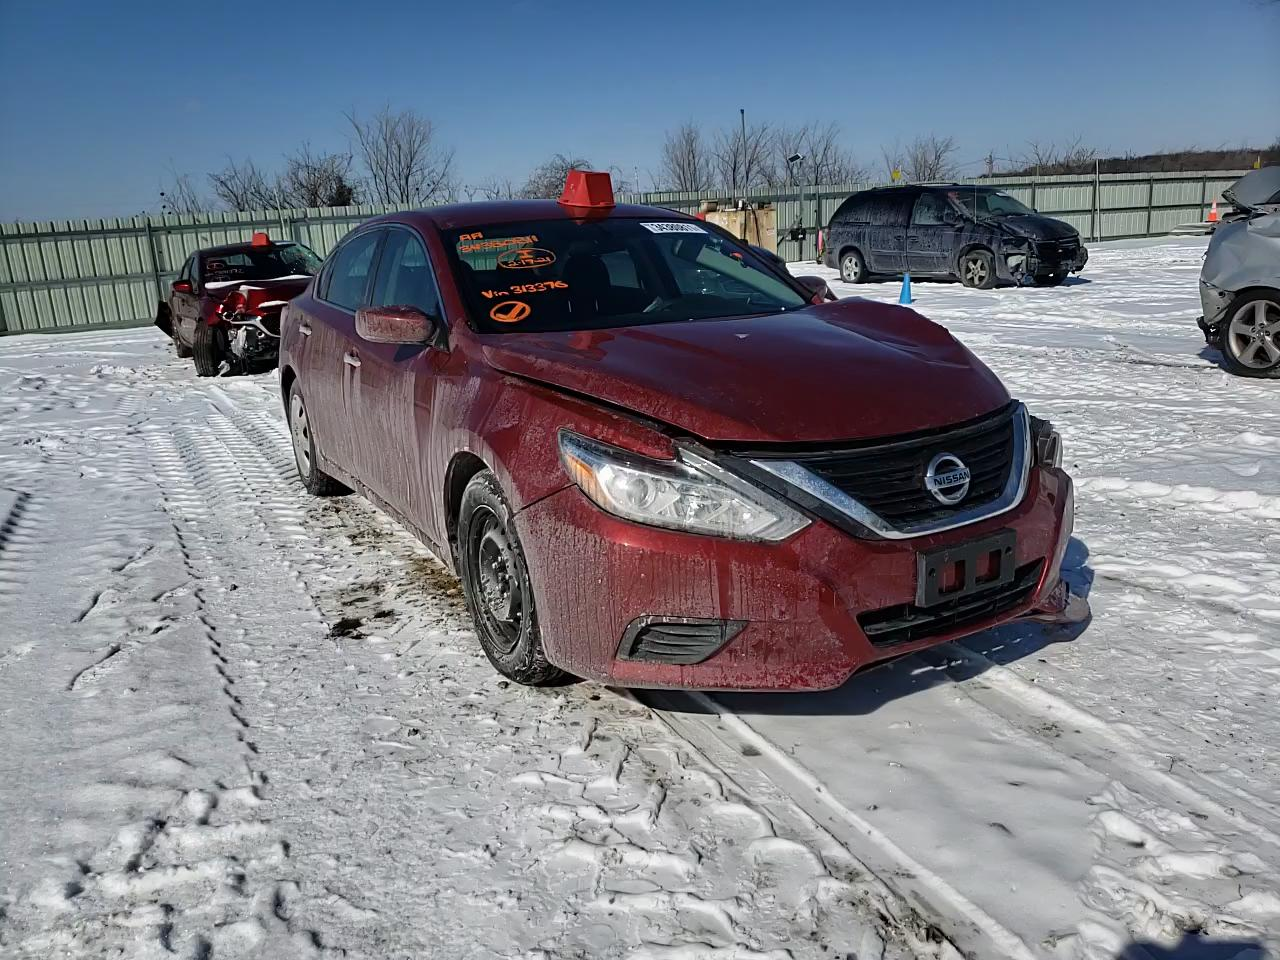 2017 NISSAN ALTIMA 2.5 - Other View